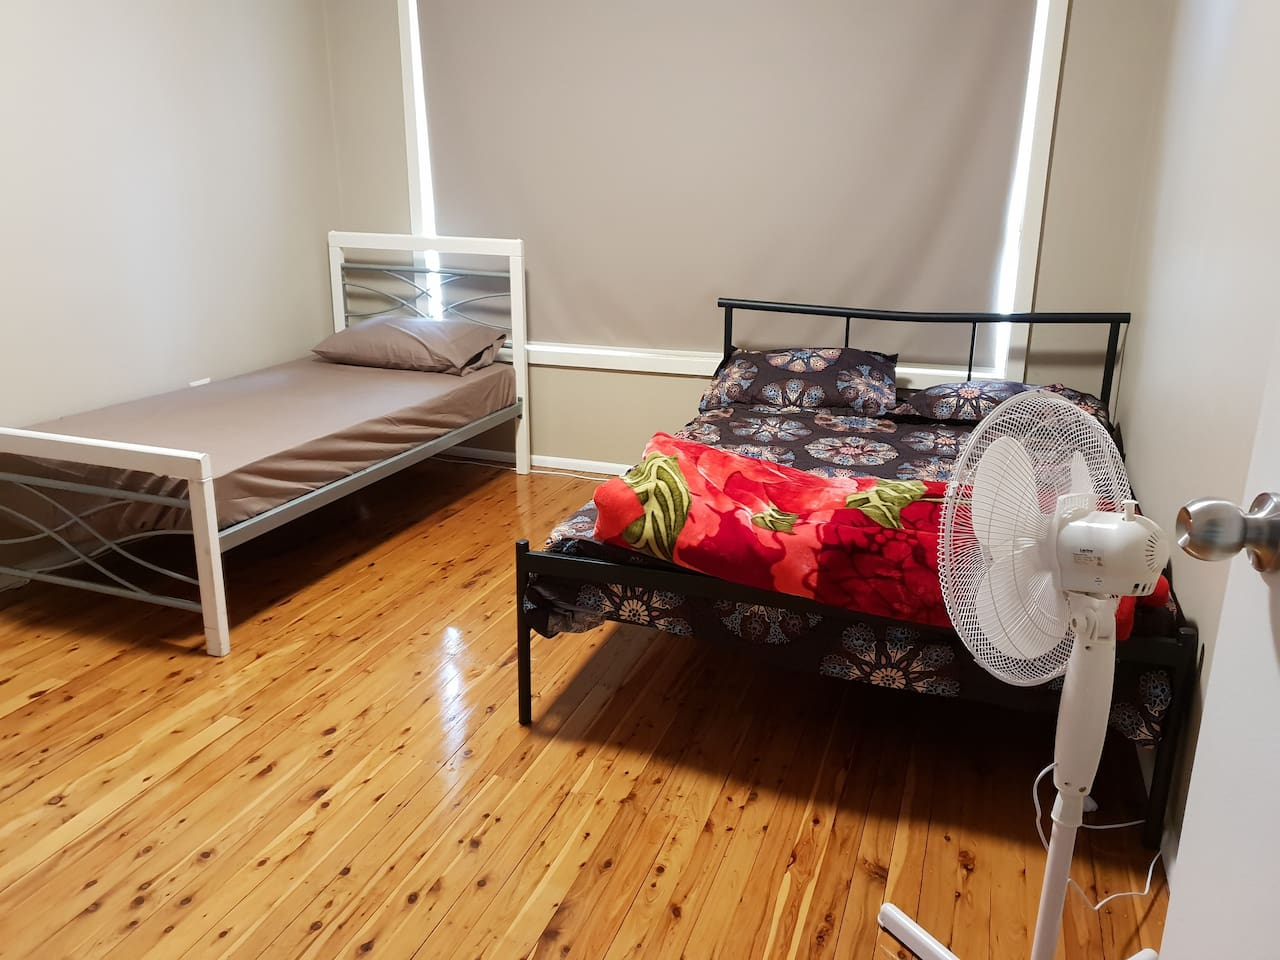 Room has both double and single bed, room size is big